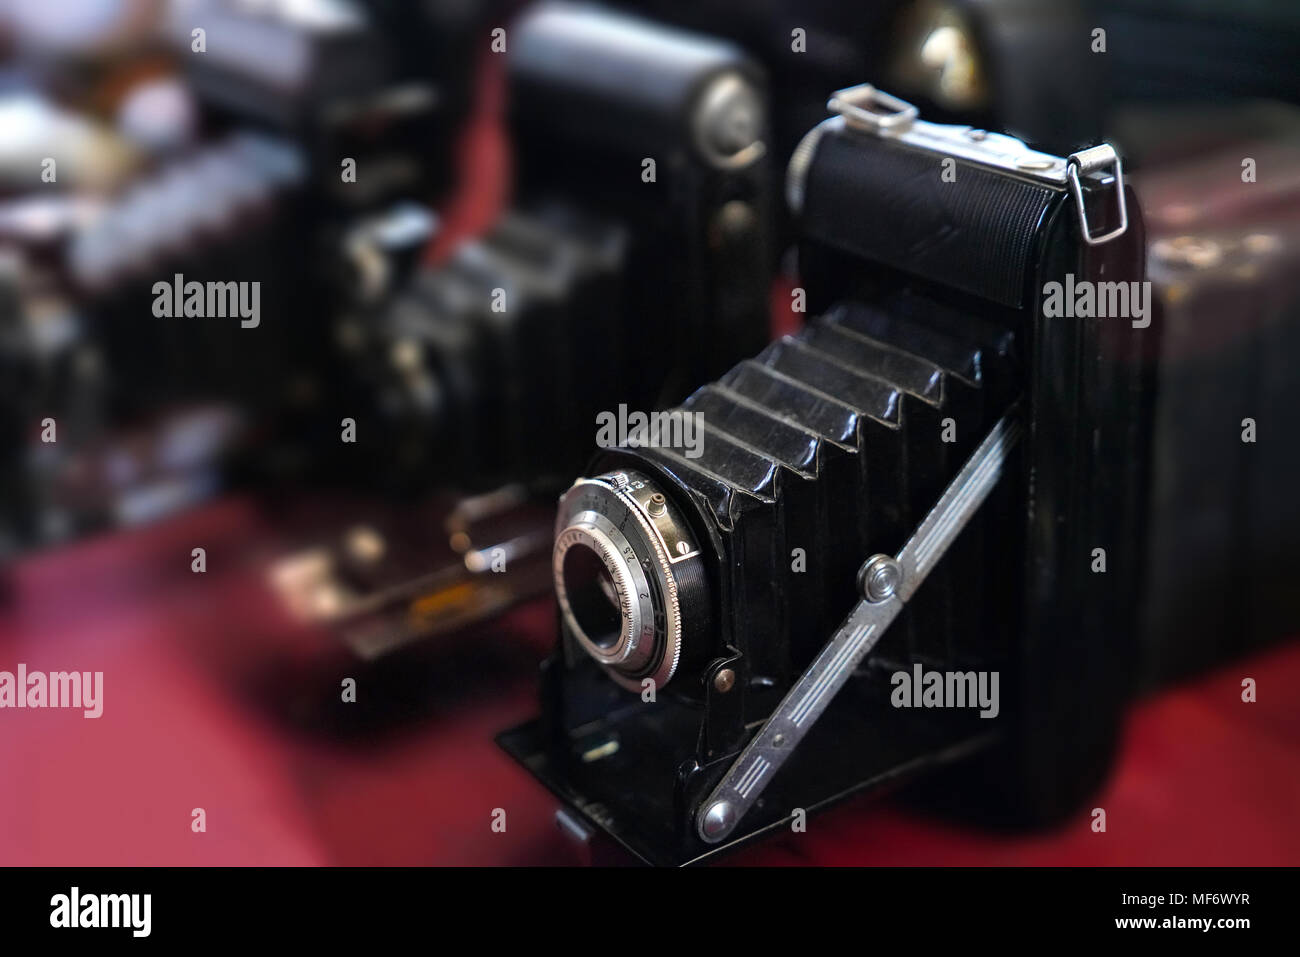 Selective focus of old bellow photography cameras - Stock Image